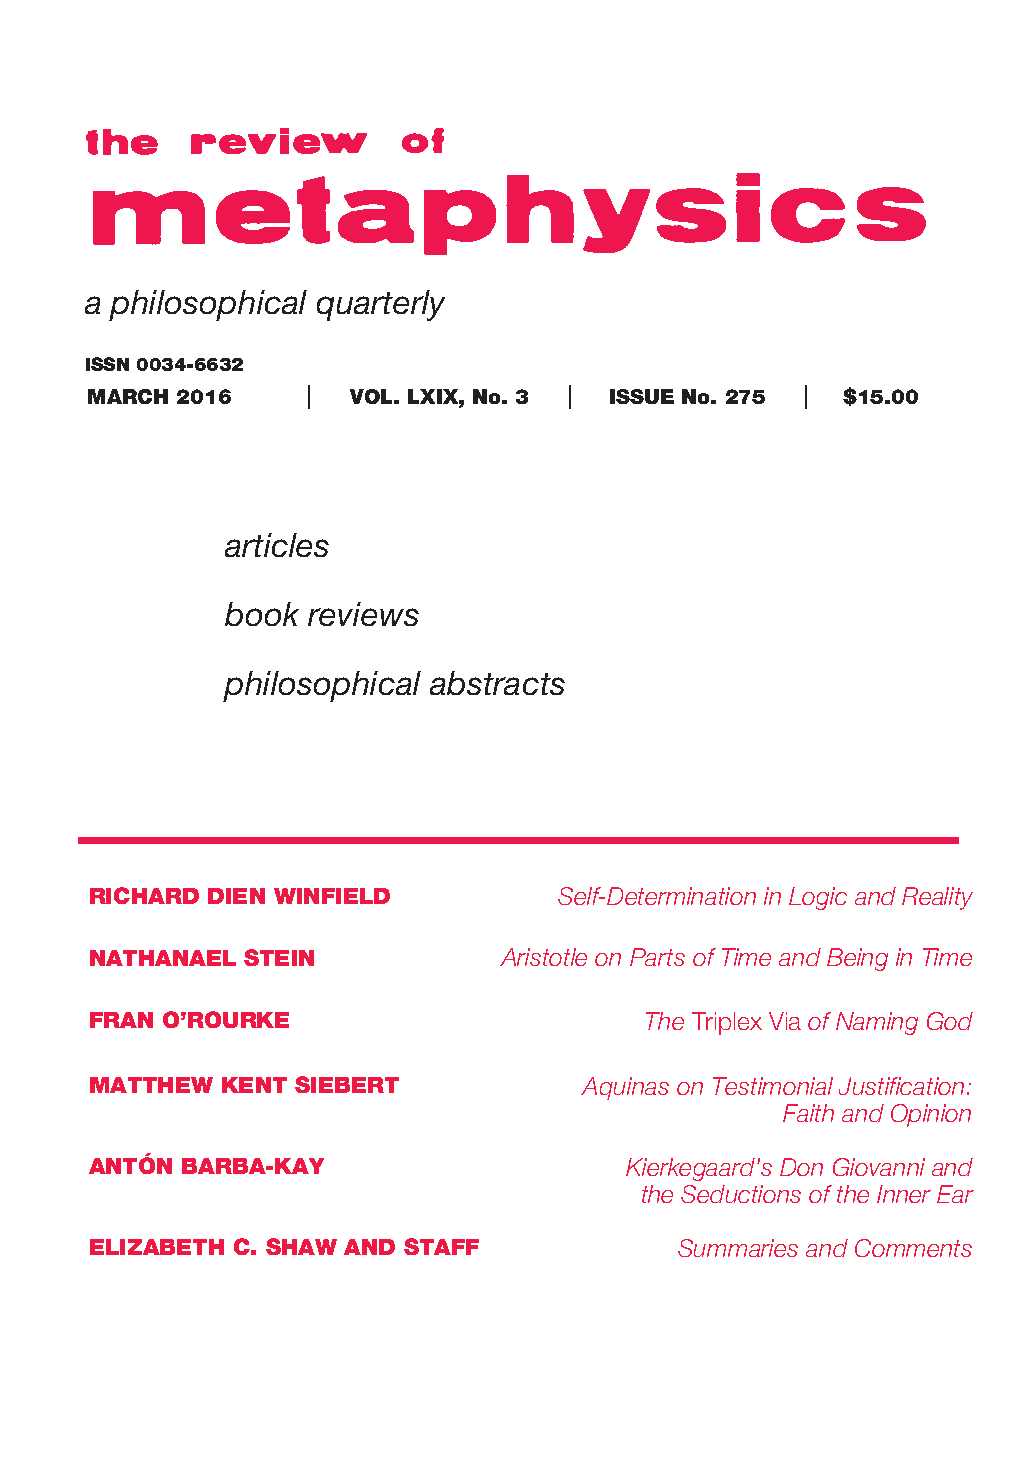 Review of metaphysics dissertation contest